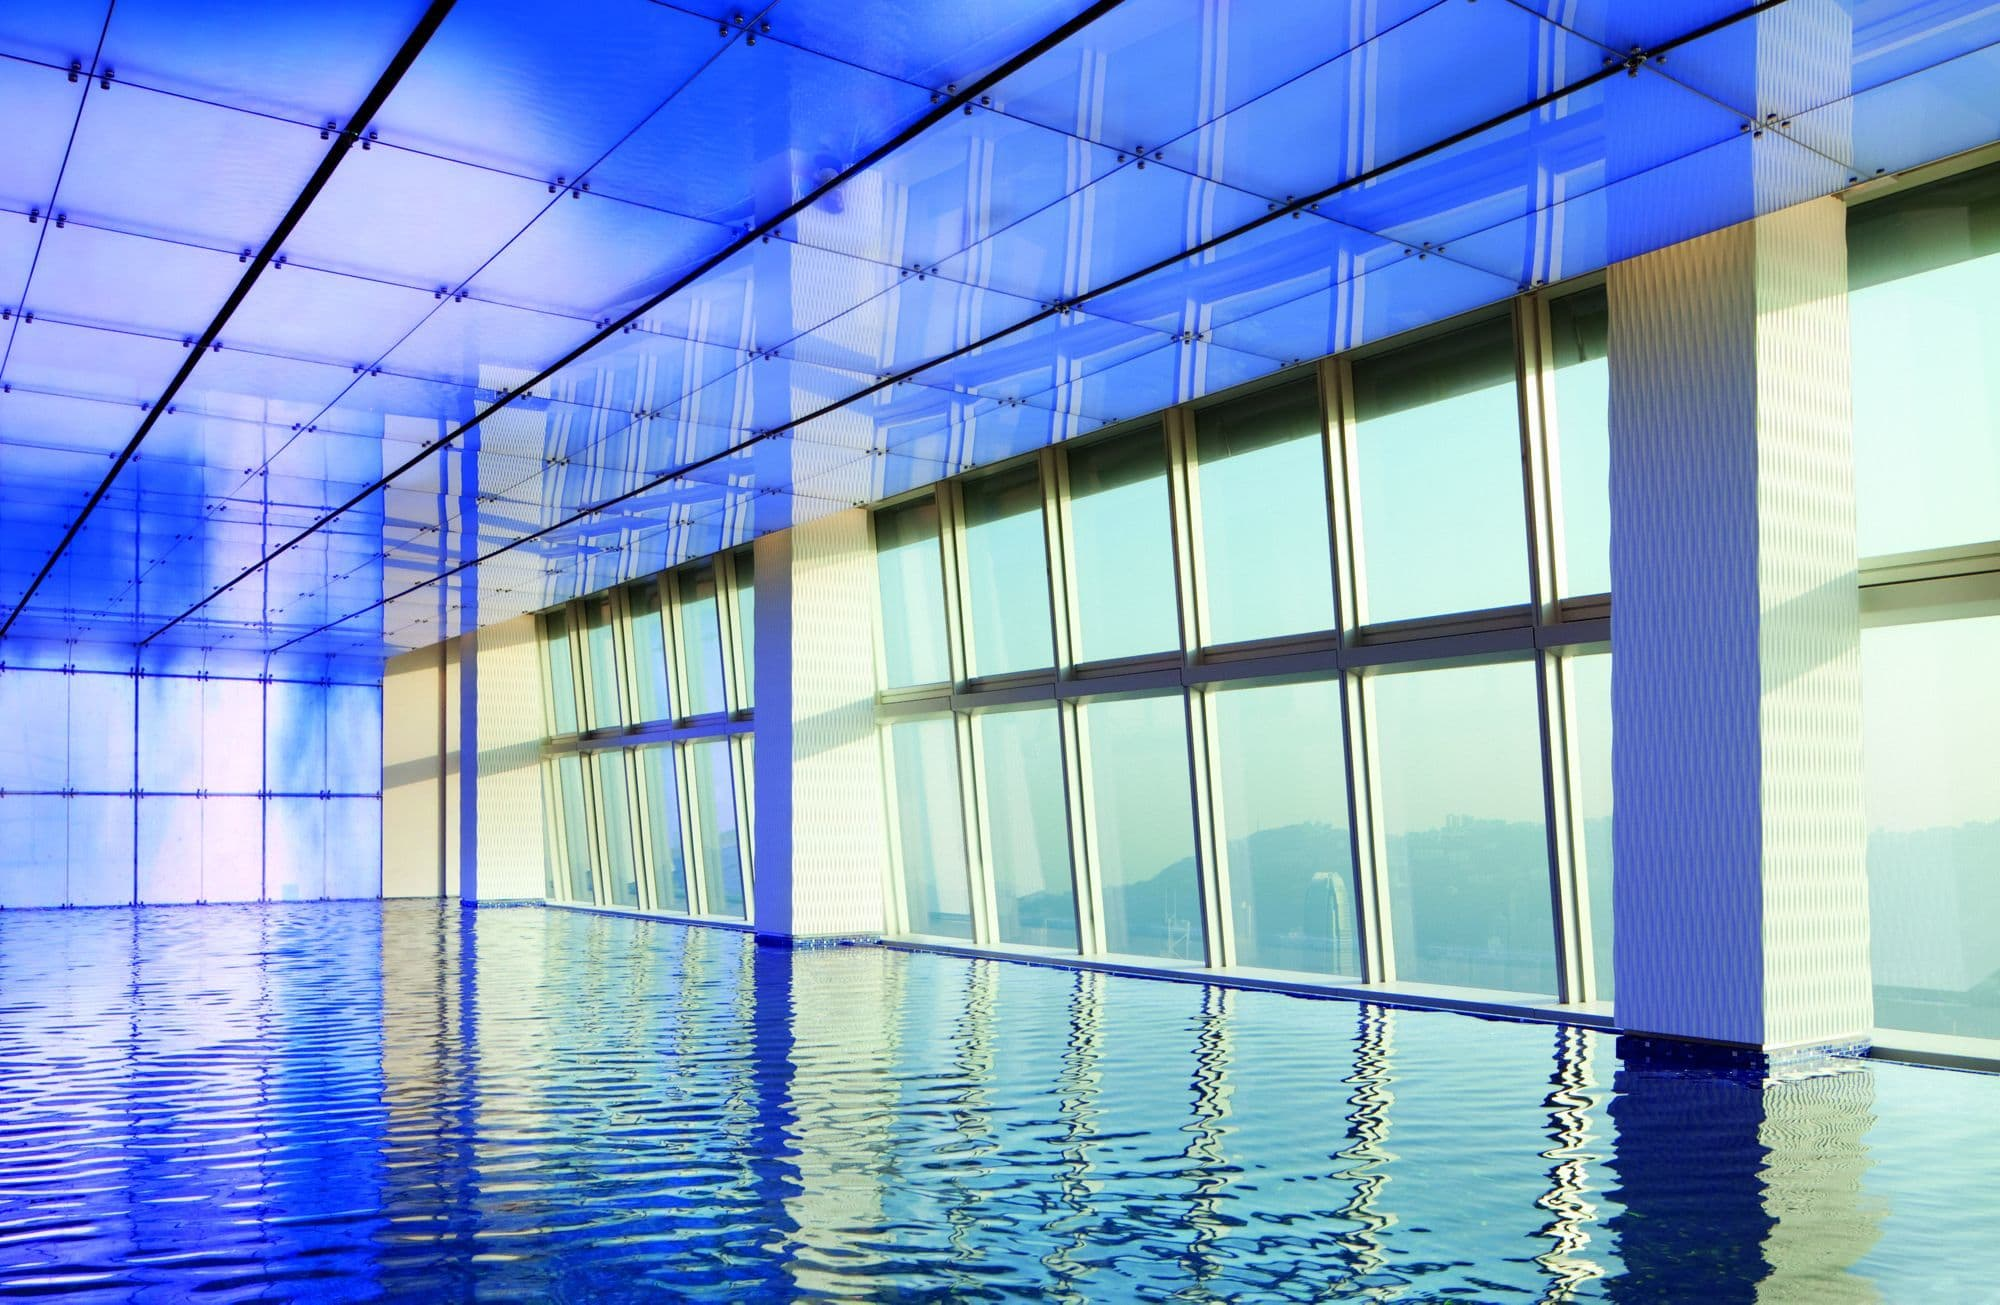 The indoor pool on the 118th floor of the Ritz-Carlton Hong Kong